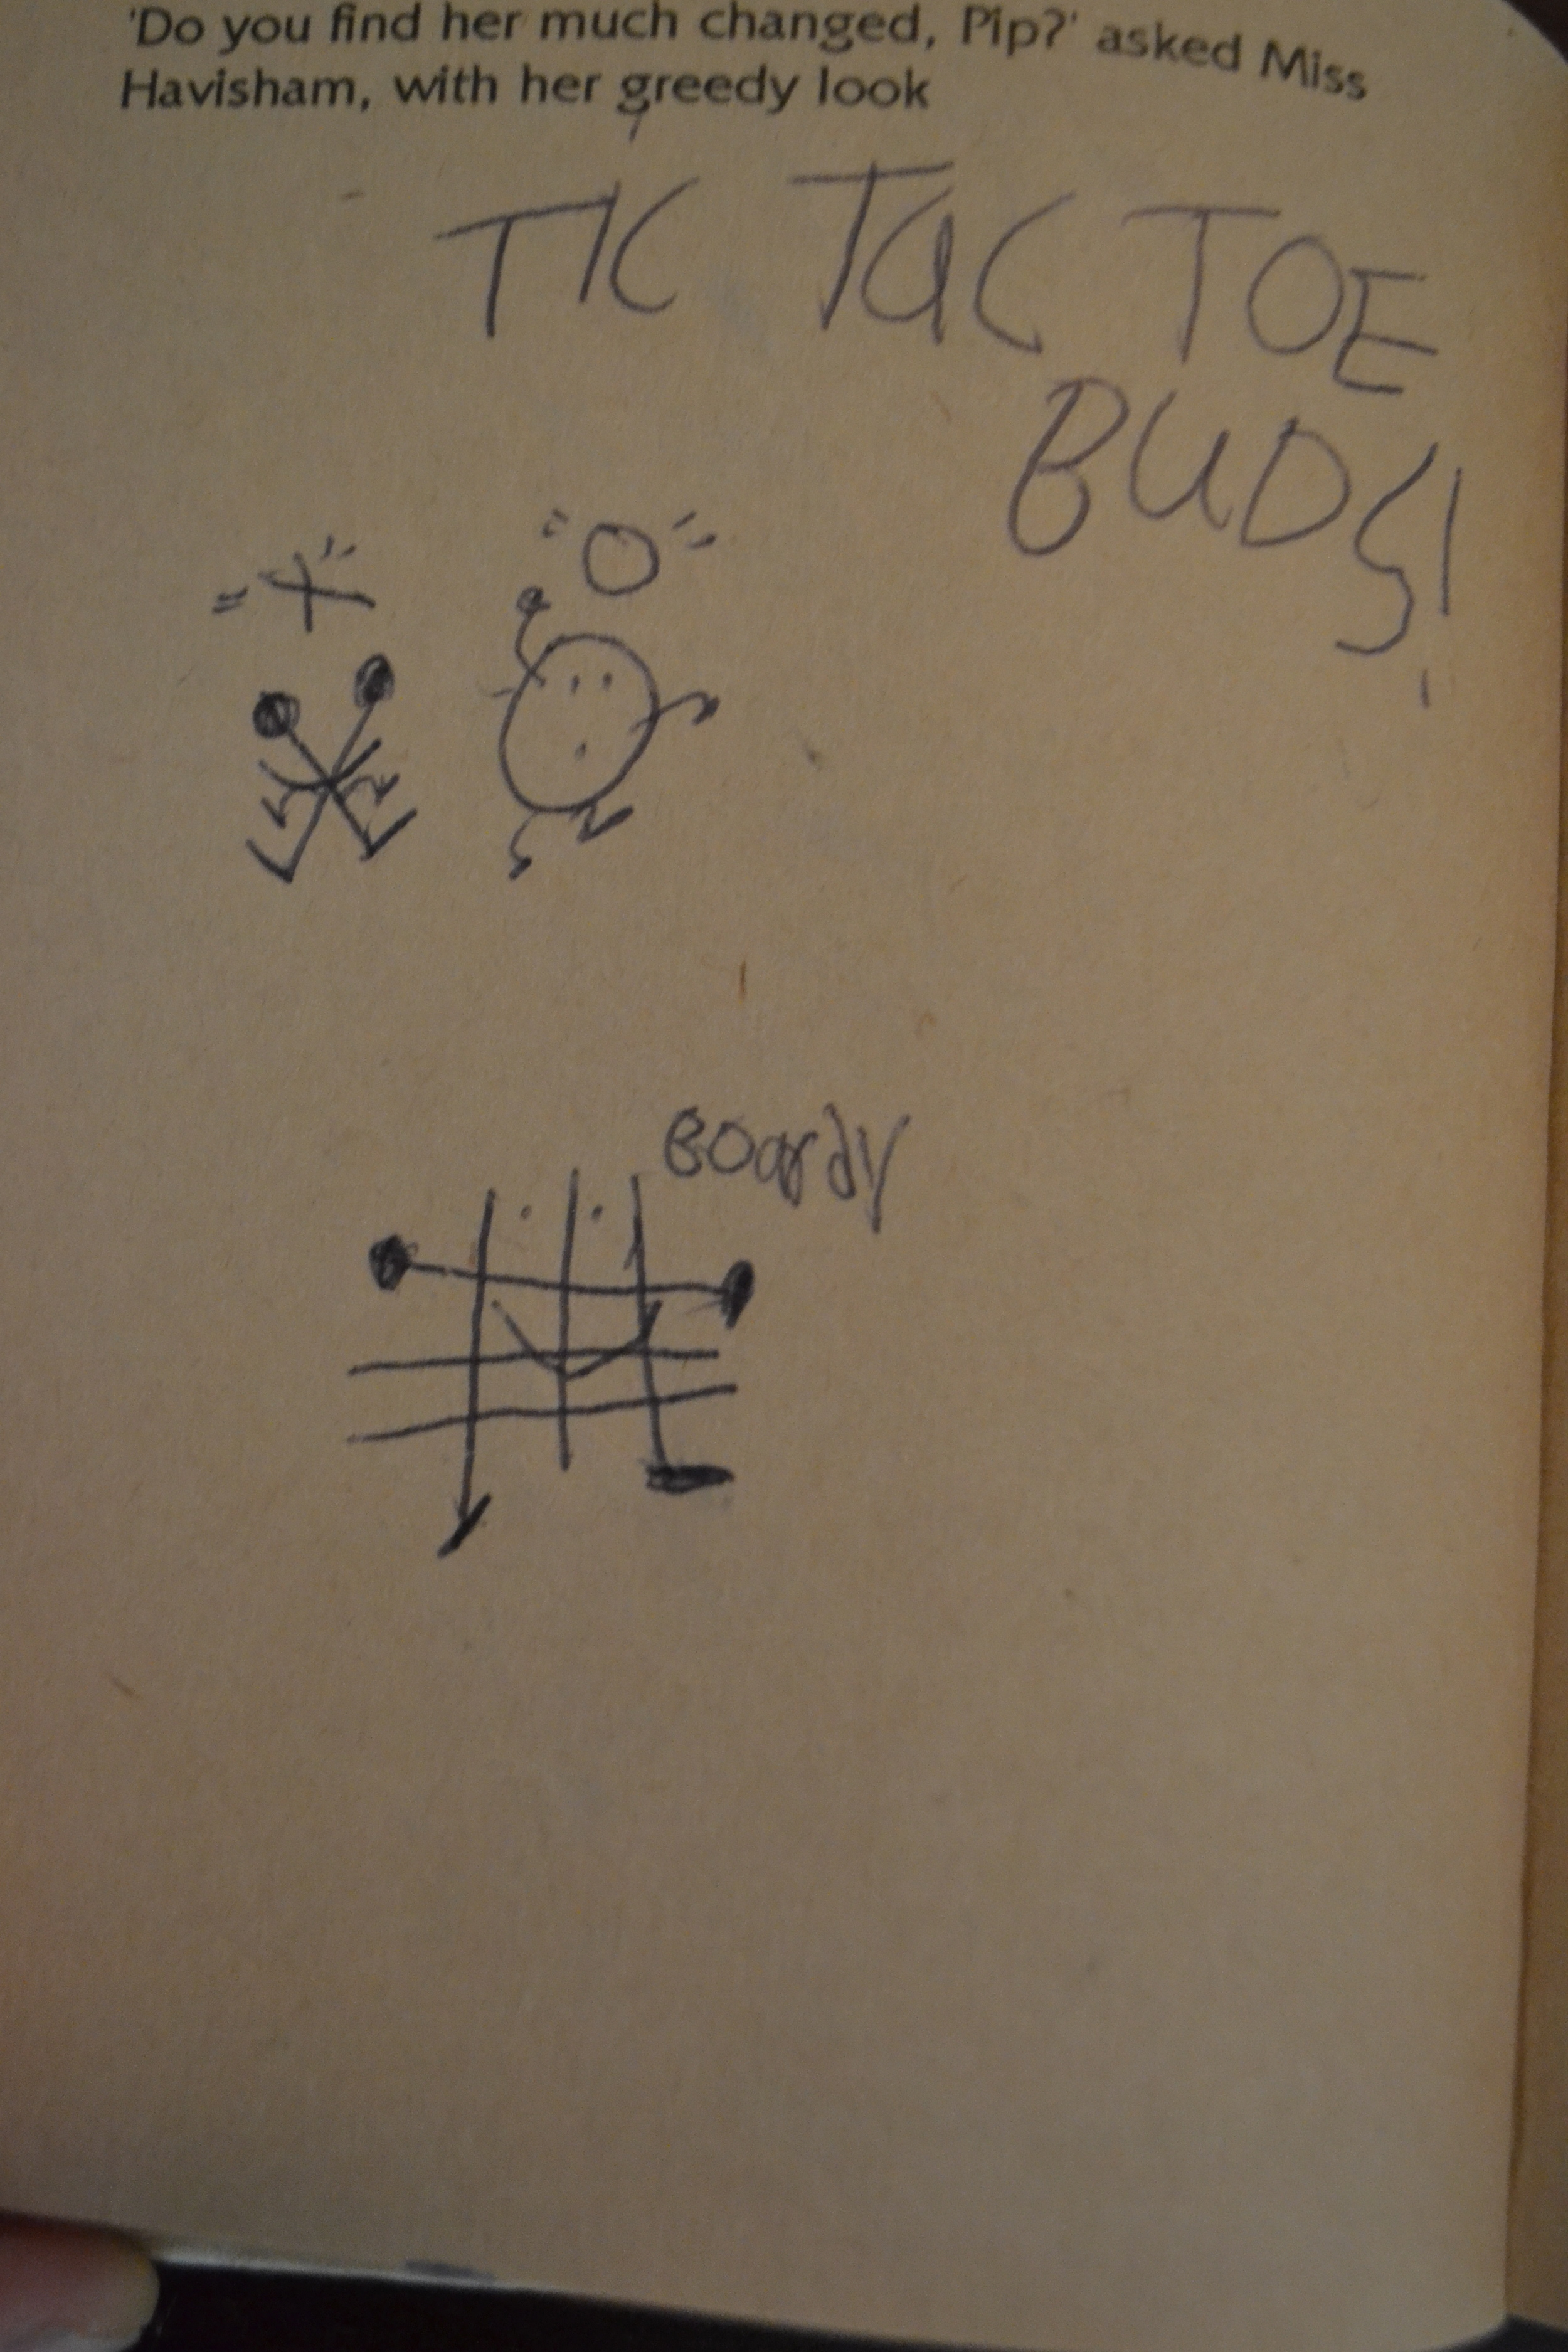 The Tic Tac Toe Buds